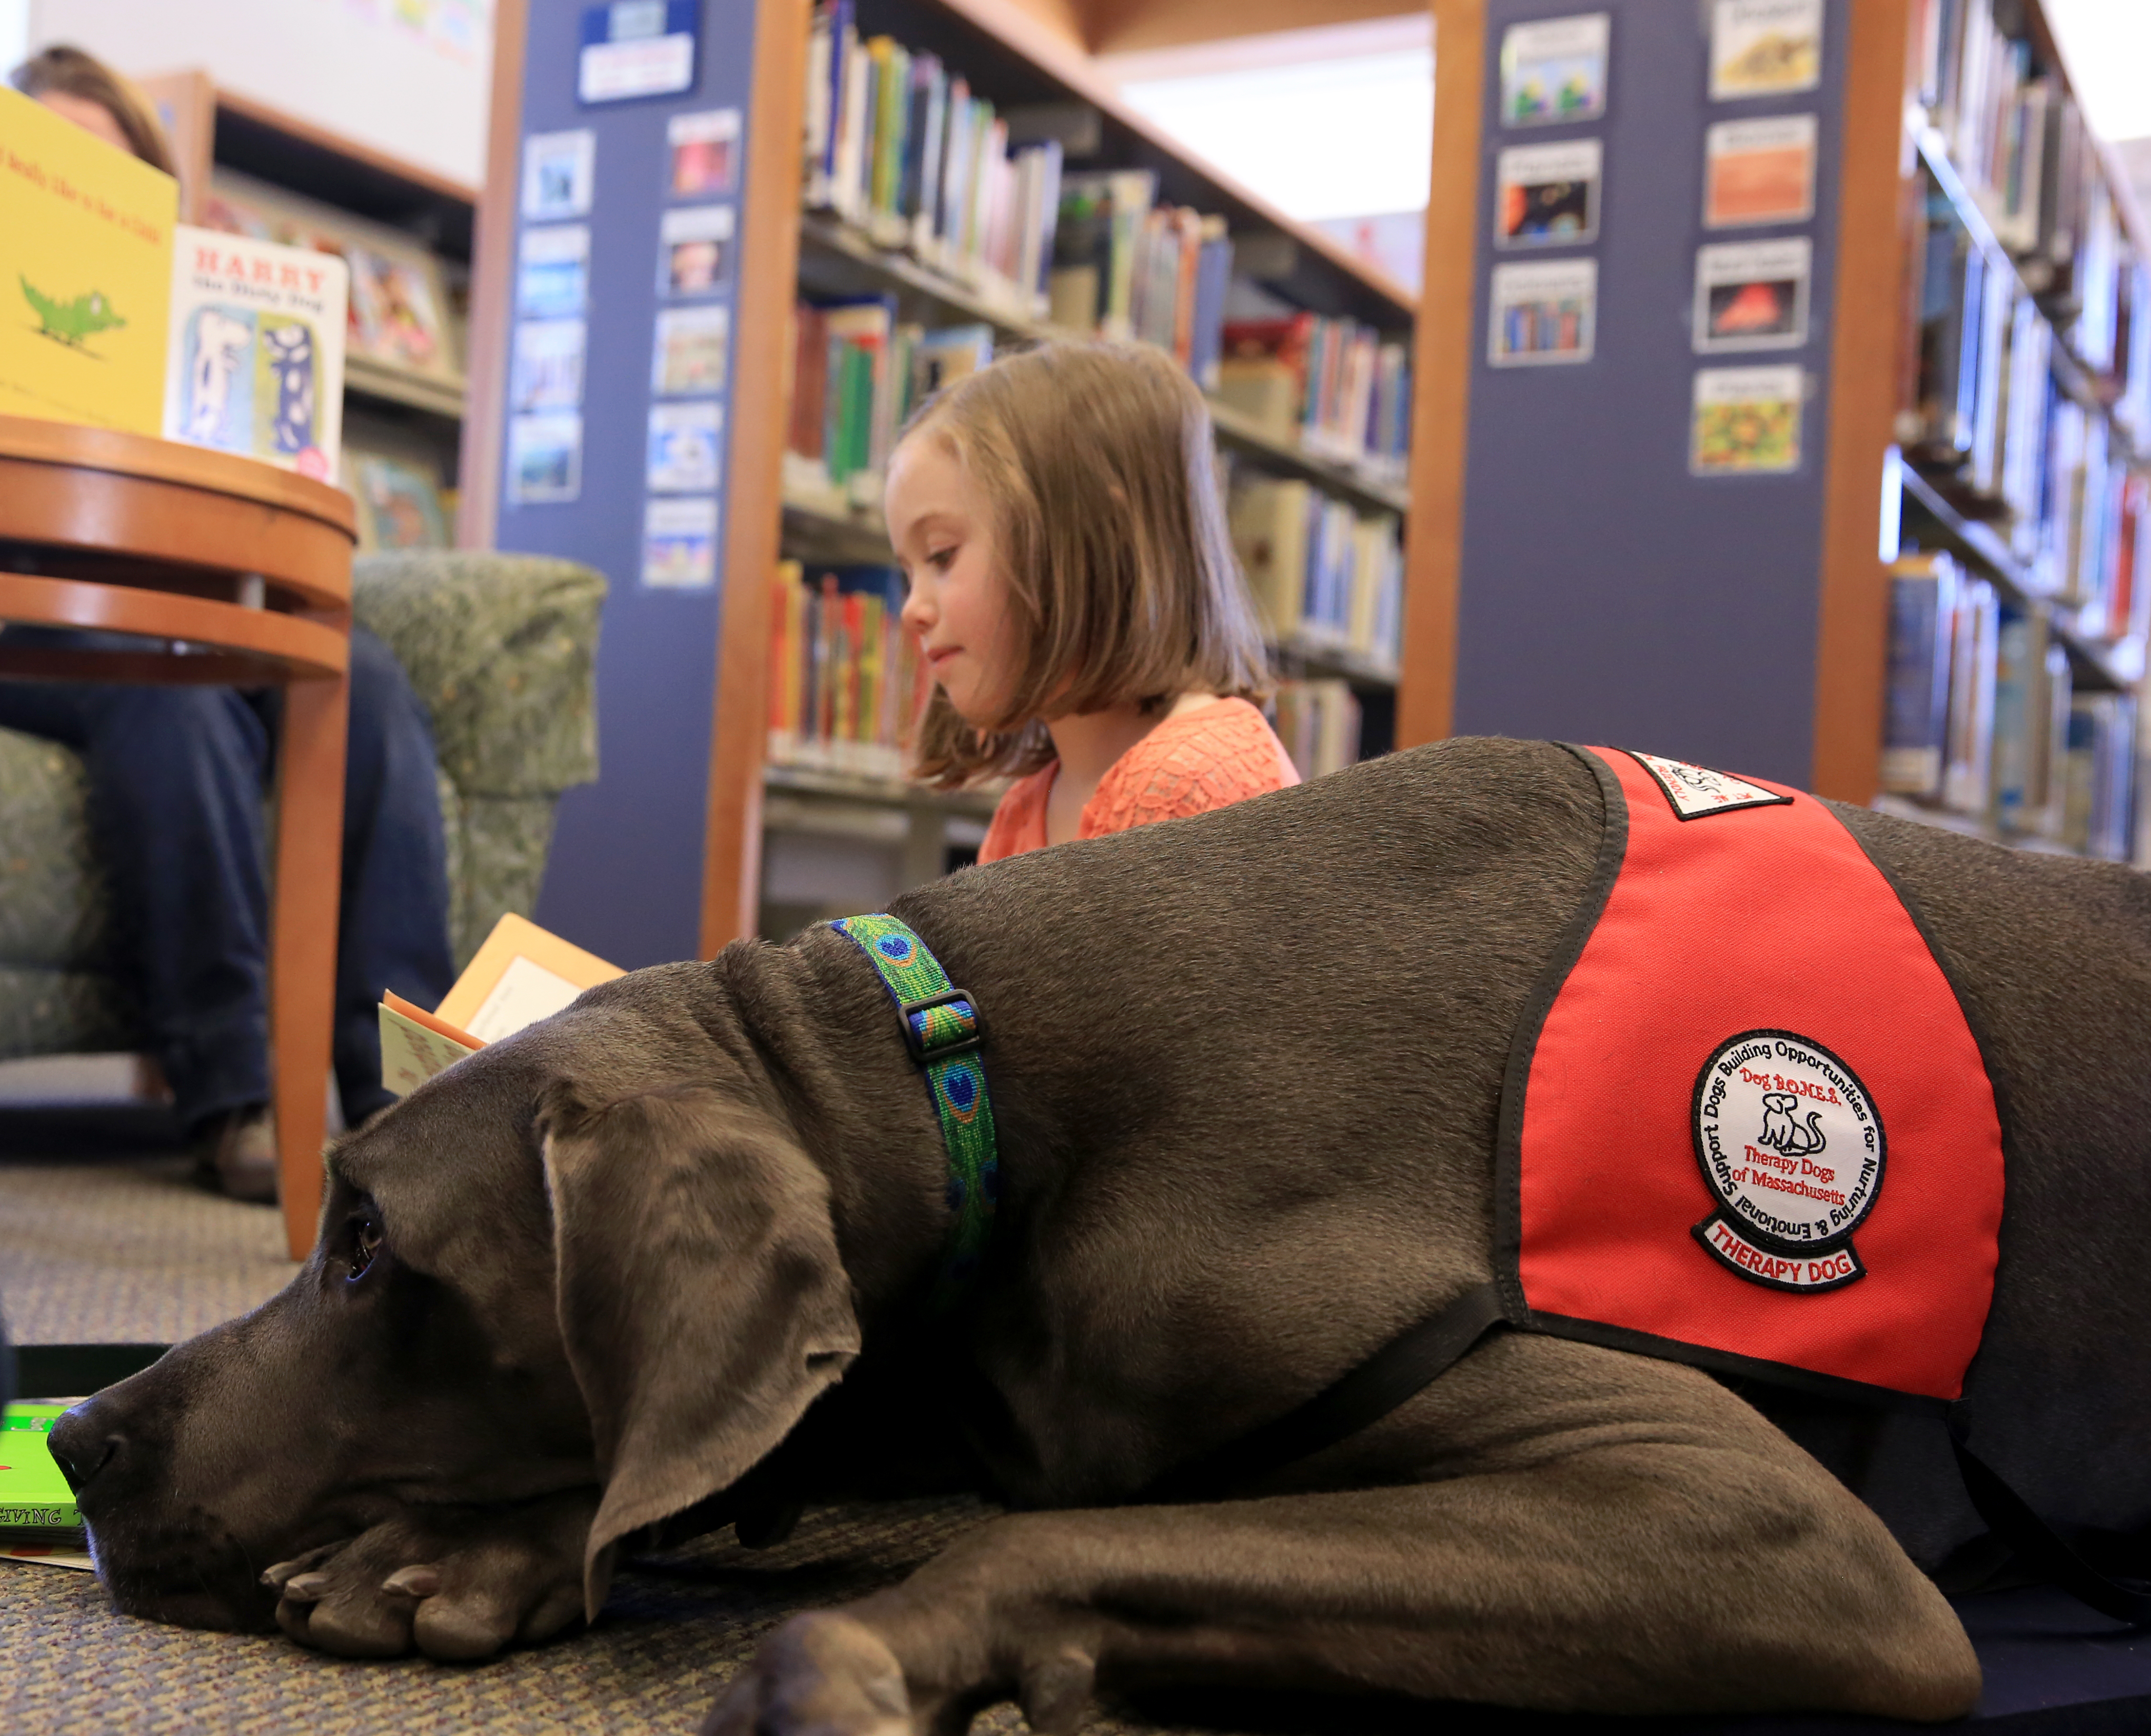 When reading goes to the dogs - The Boston Globe